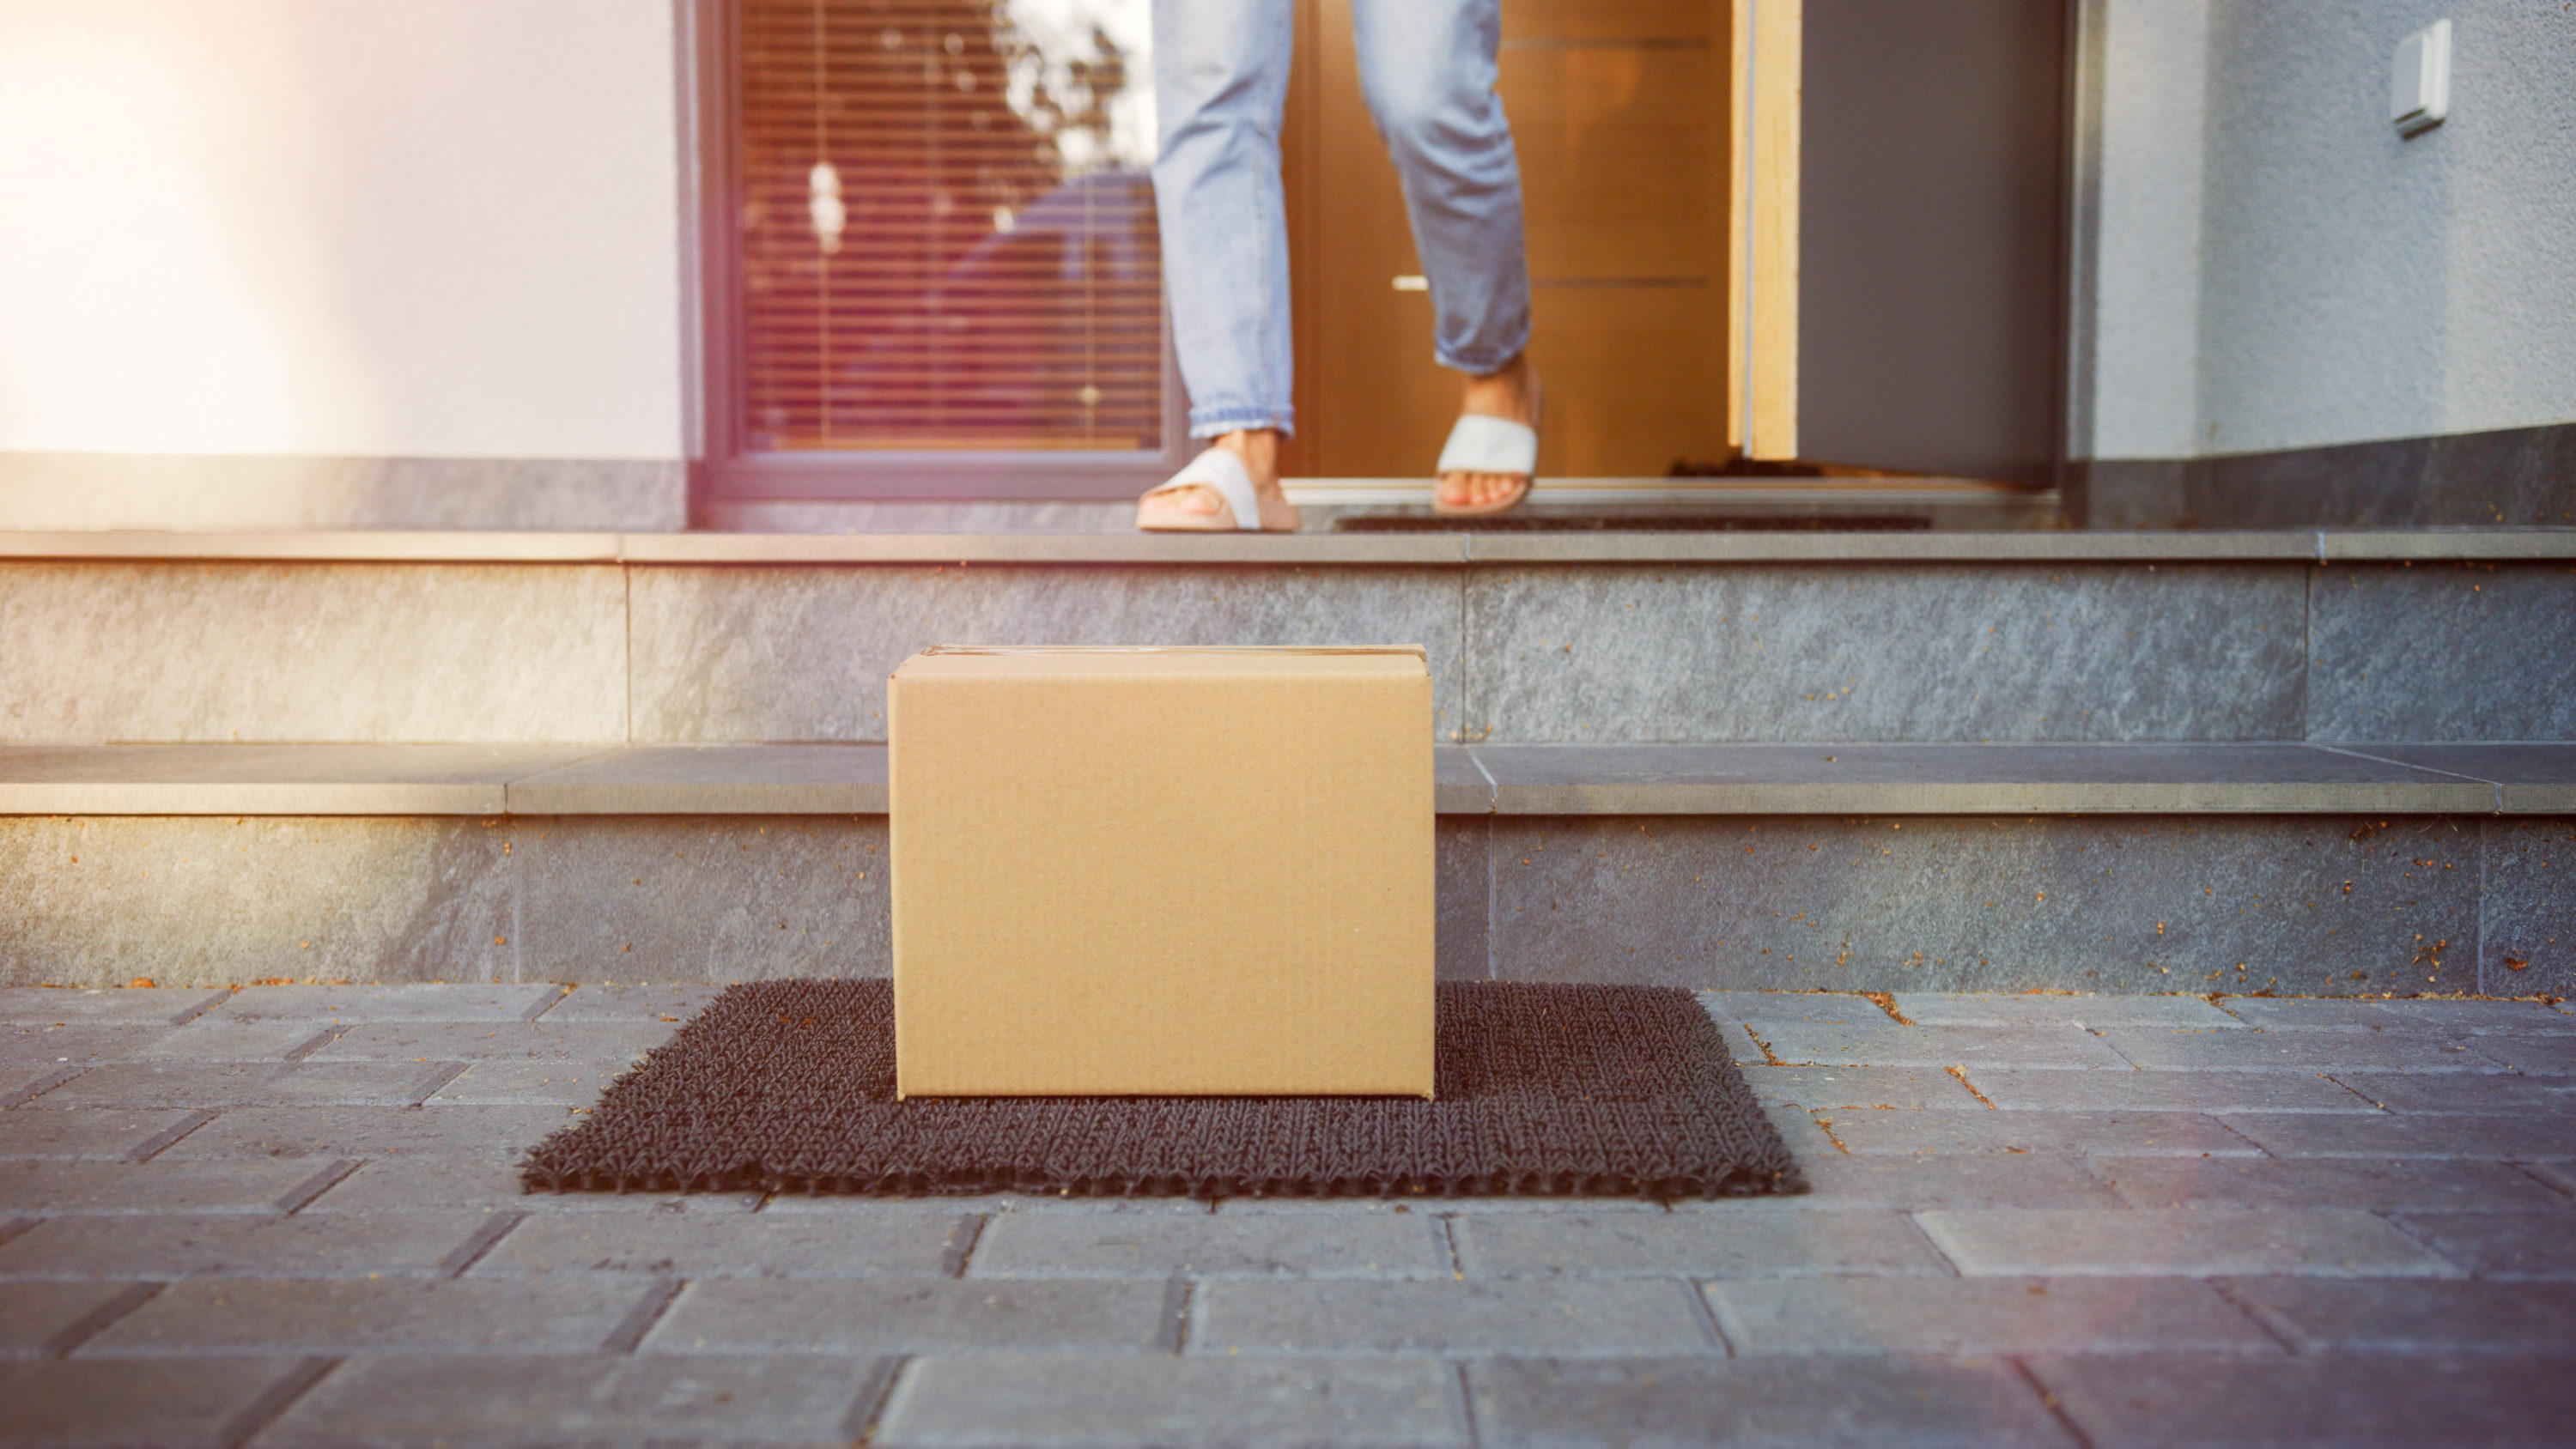 Where's my package? Foiling parcel delivery thieves